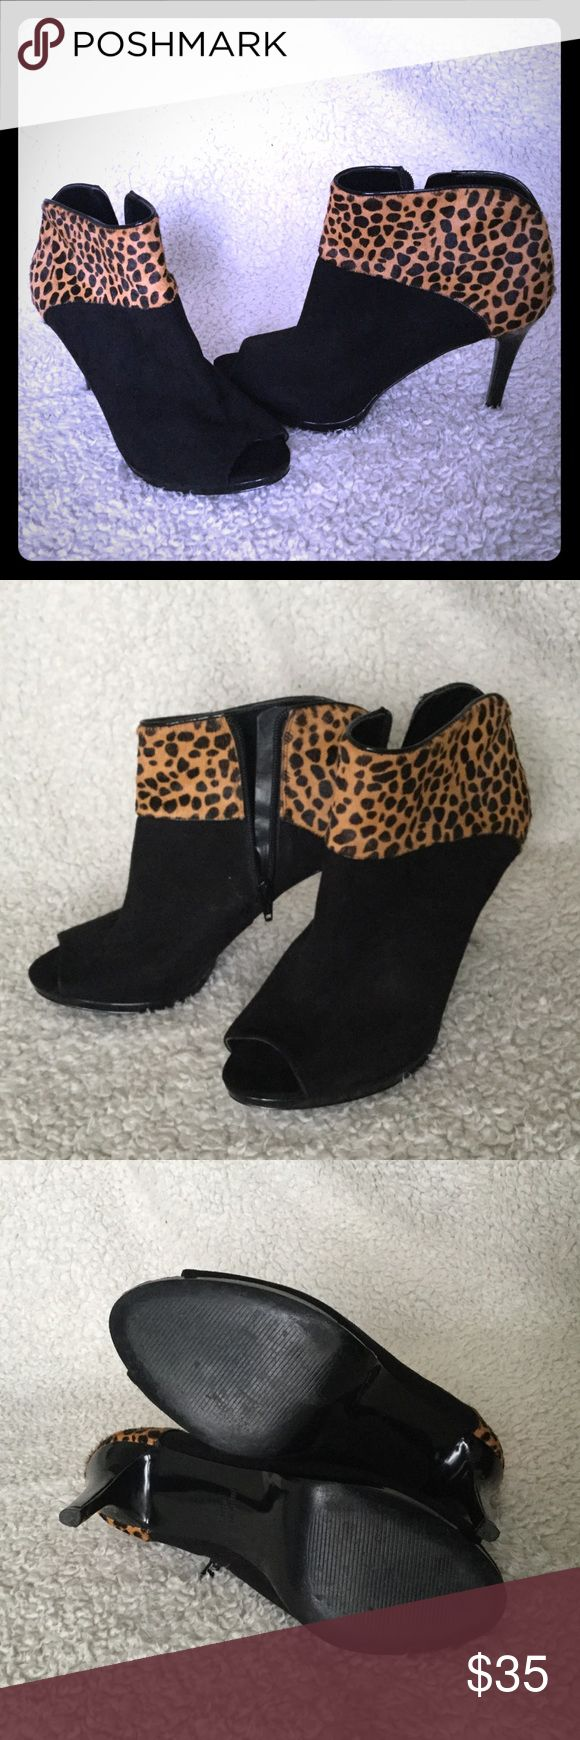 Black Suede and Leopard Fur Nine West Bootie Suede and Fur Bootie. Peep toe. Slight platform.  Inside zip. Slight scuff on inside of one shoe, see pic. Not noticeable when wearing. Otherwise in excellent shape, worn twice for speaking on stage. Nine West Shoes Ankle Boots & Booties